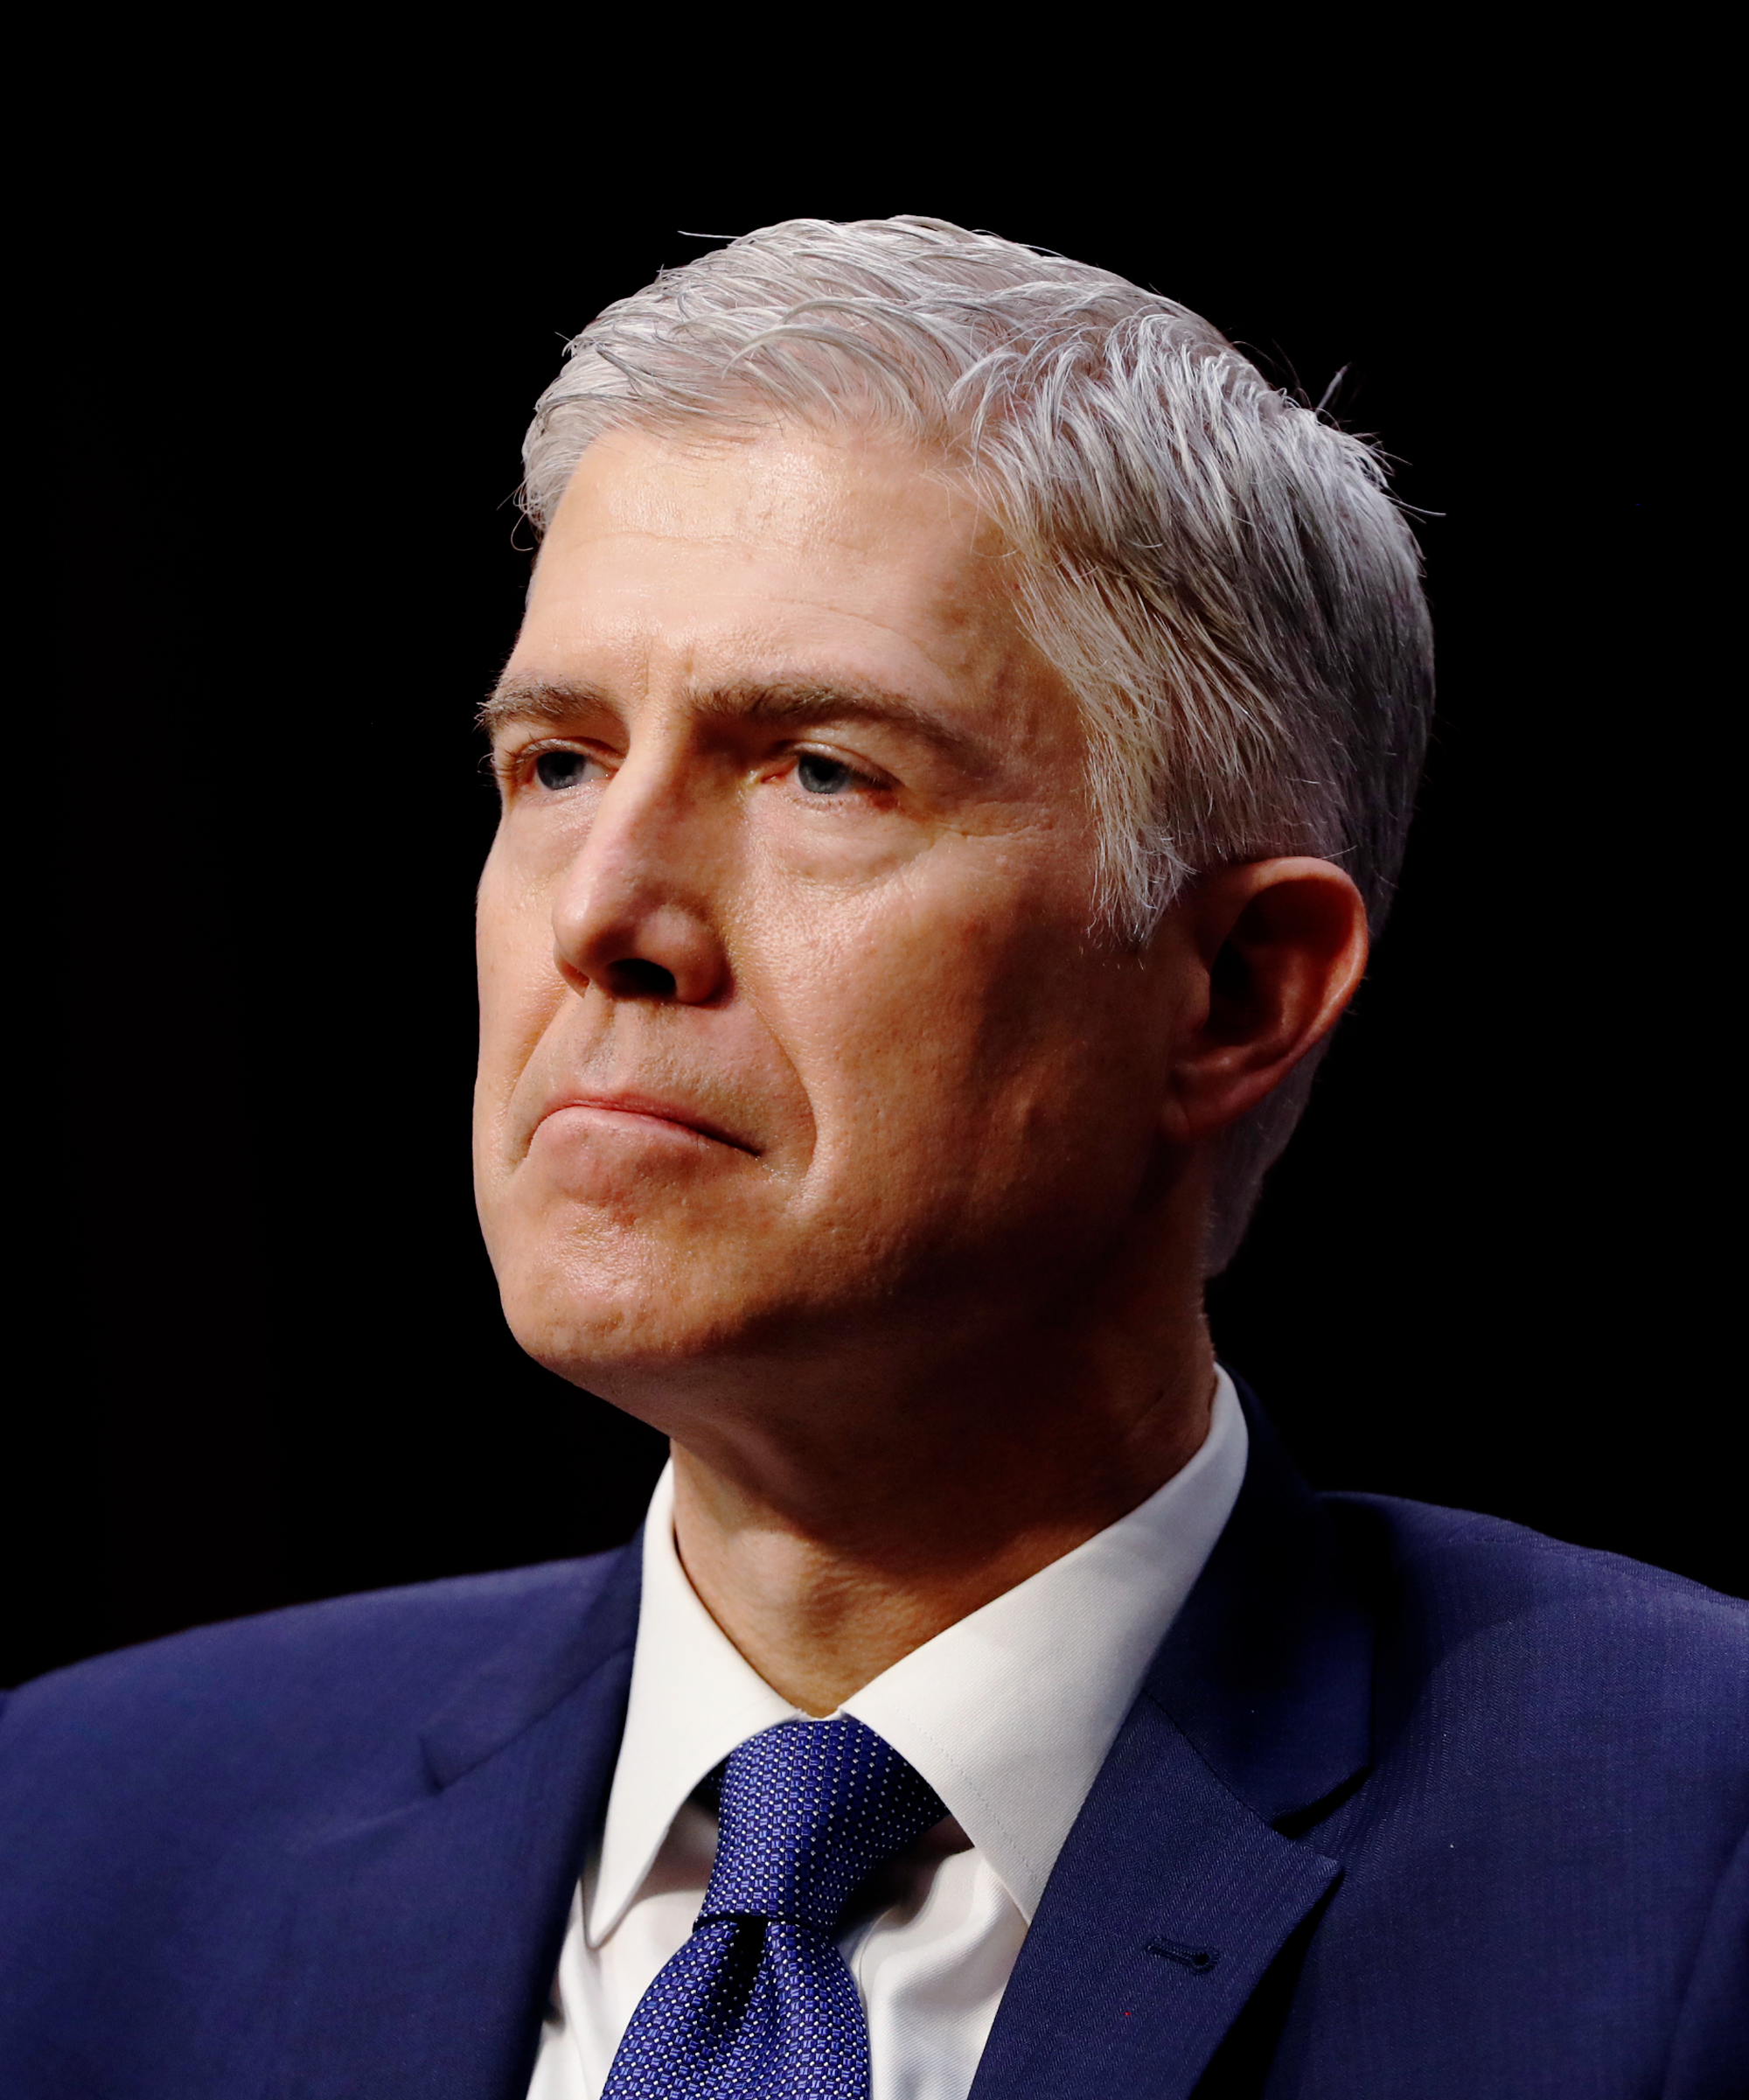 Democrats Break Ranks to Vote for Confirmation of Gorsuch